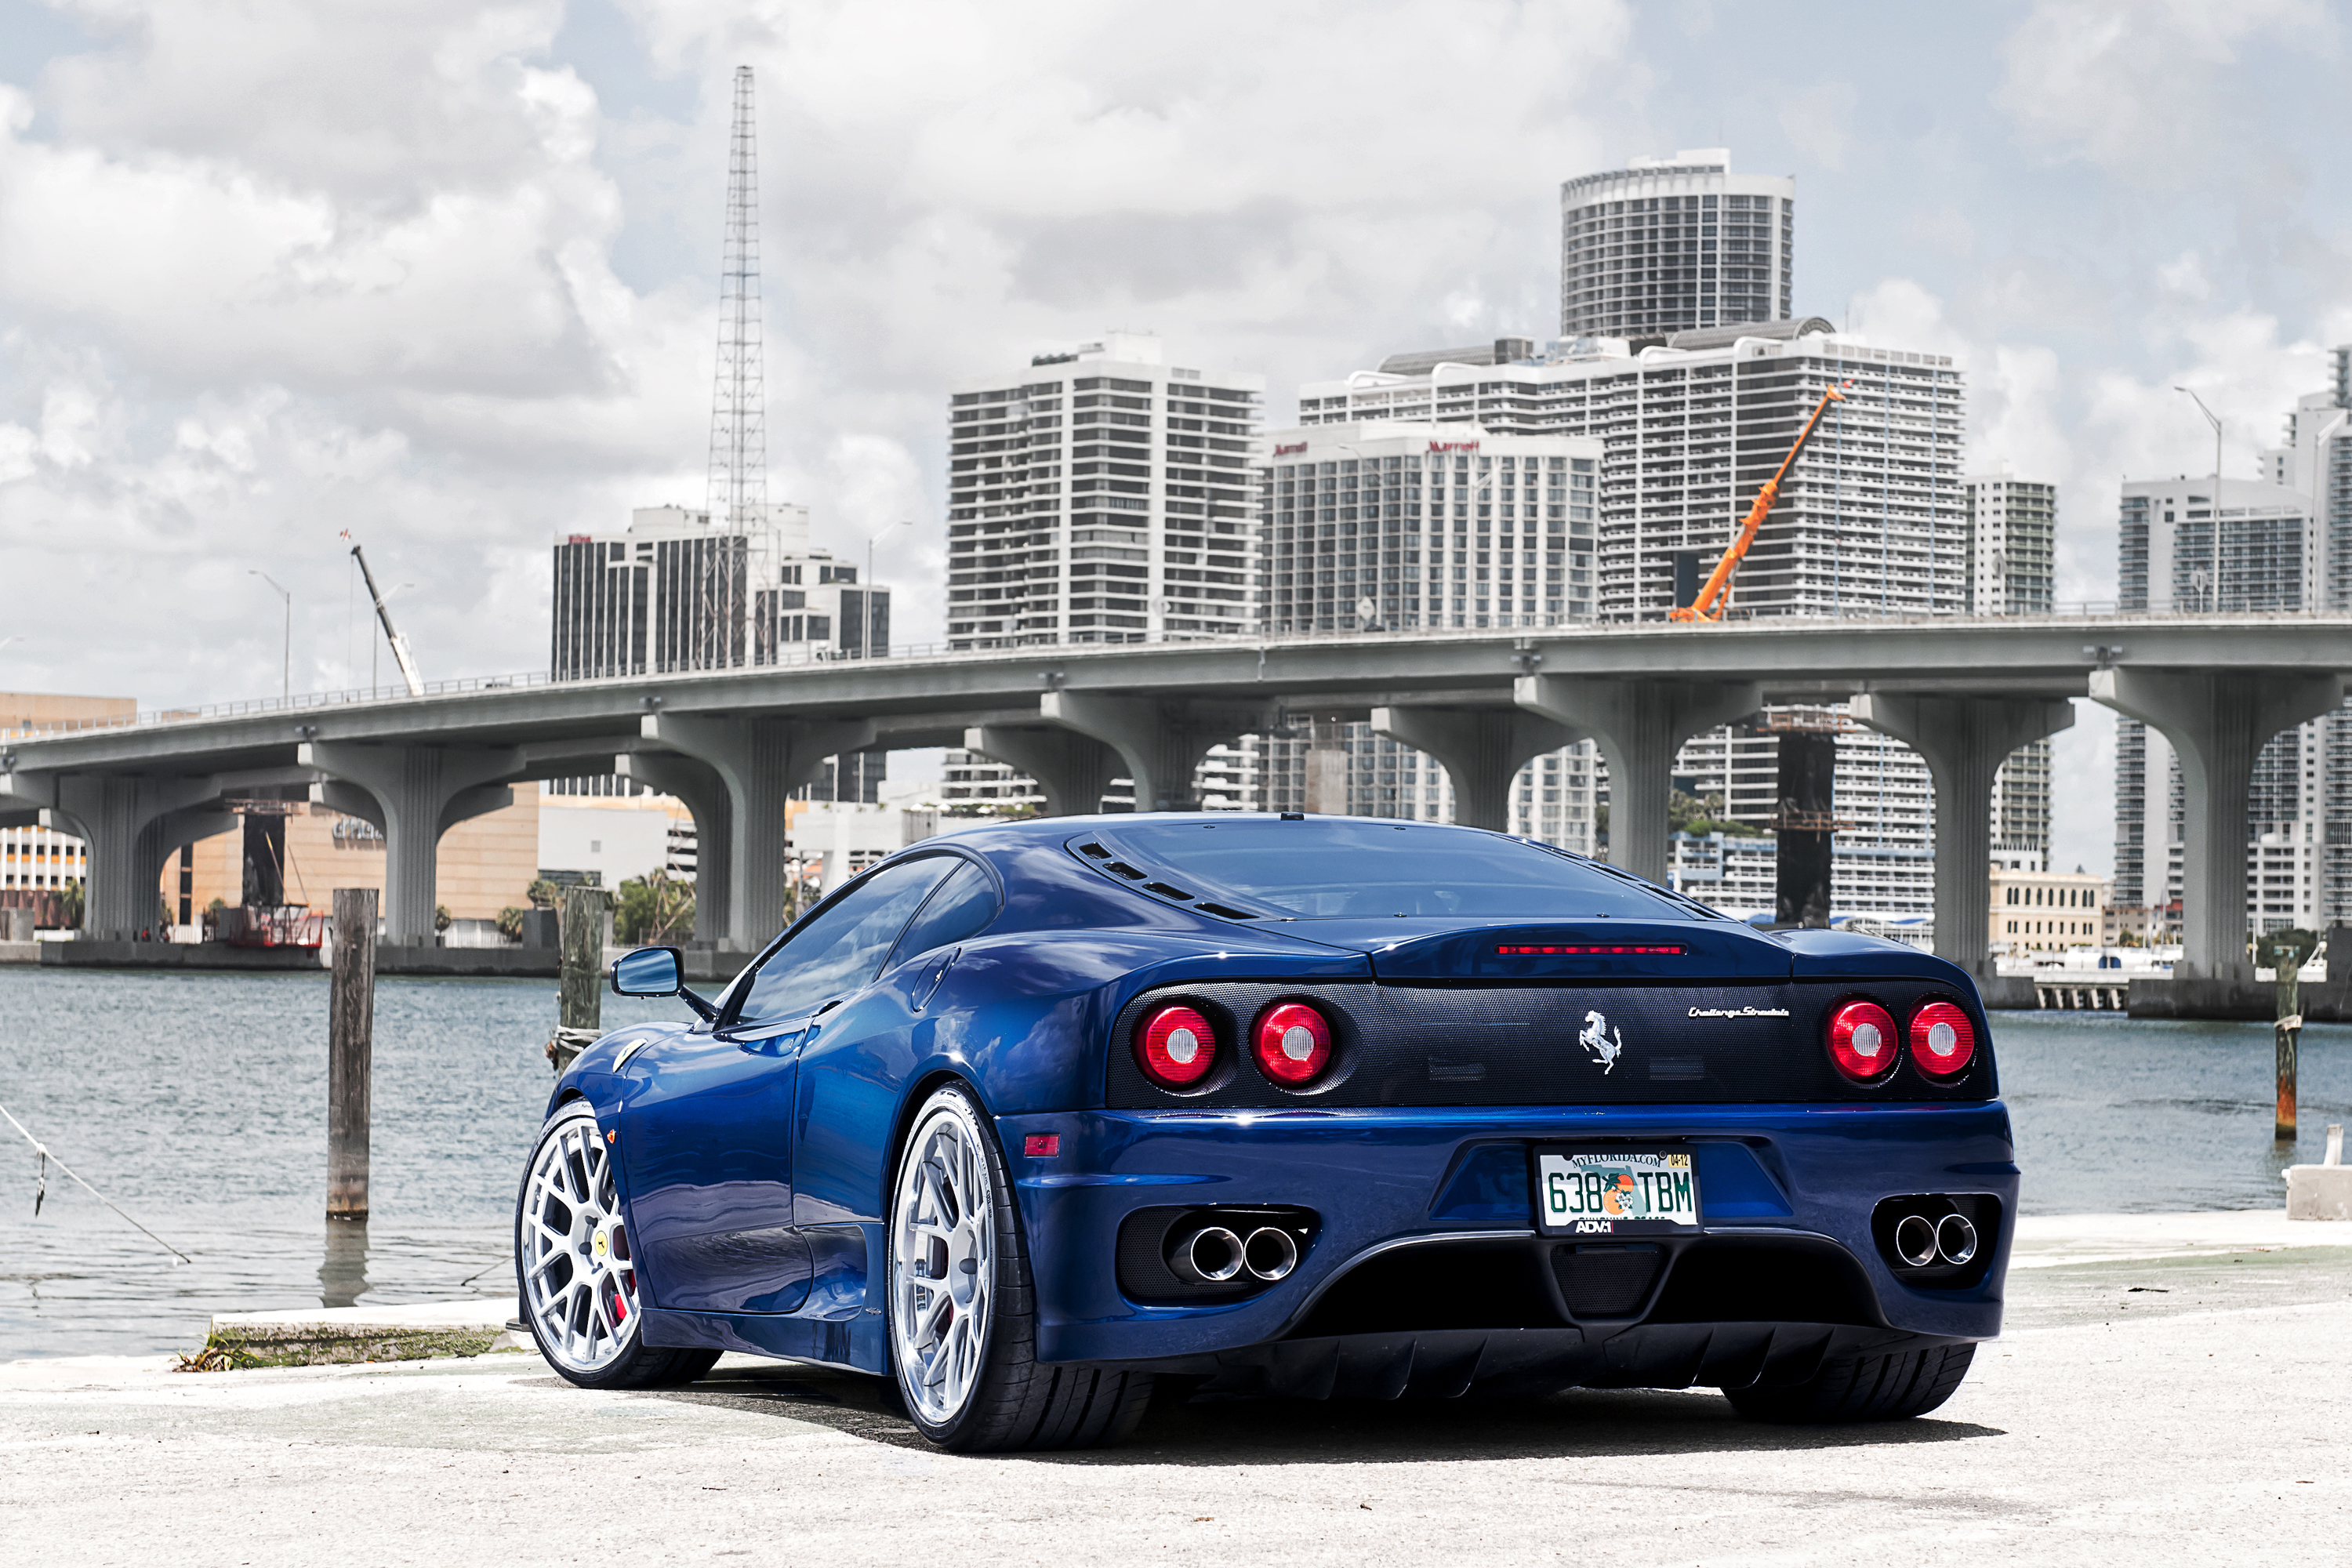 ferrari 360 modena hd wallpaper background image 3000x2000 id 236625 wallpaper abyss. Black Bedroom Furniture Sets. Home Design Ideas